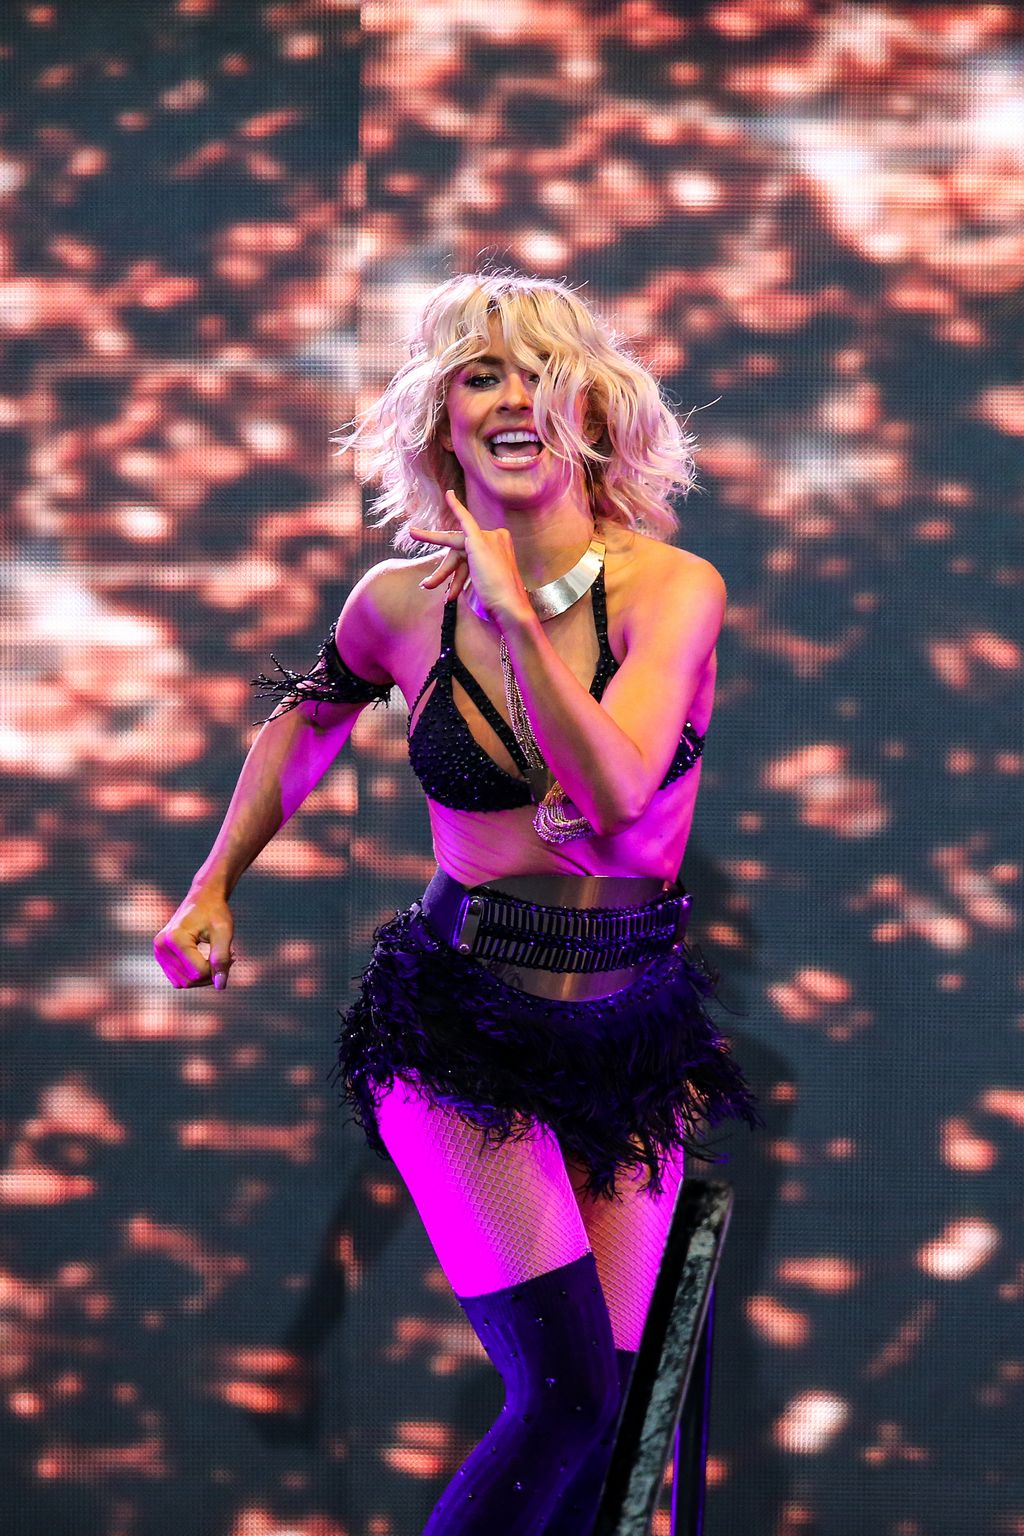 Move Live Featuring Julianne Hough and Derek Hough on Tour Live at Red Hat Amphitheater